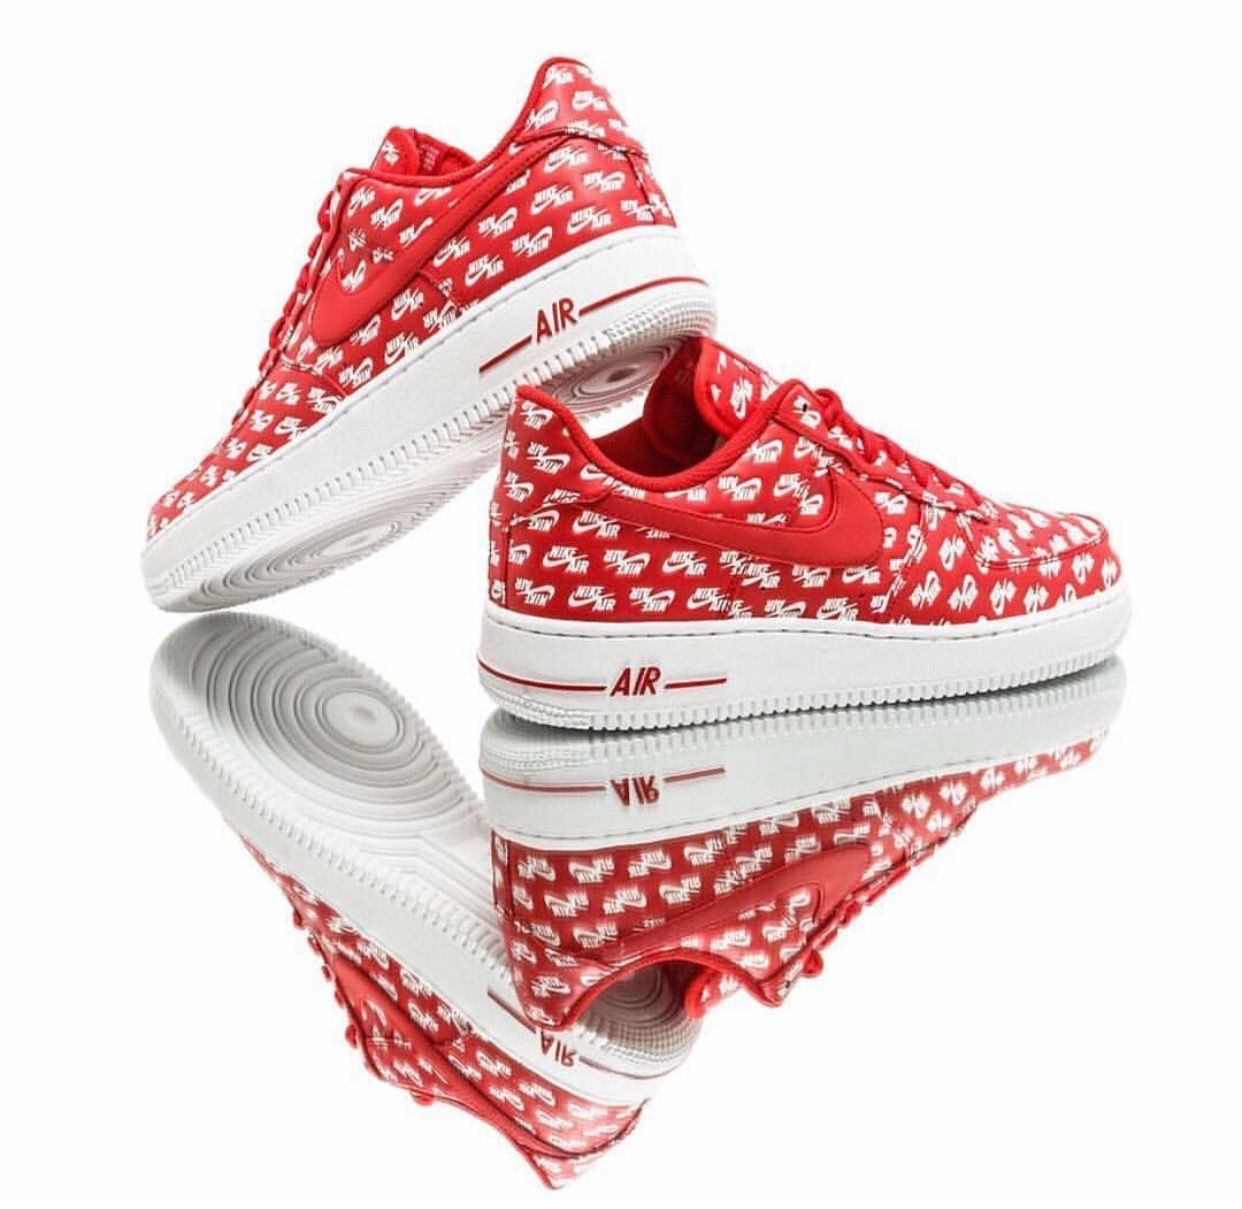 Nike Air Force 1 '07 QS 'University Red' – 'Air Emblazoned